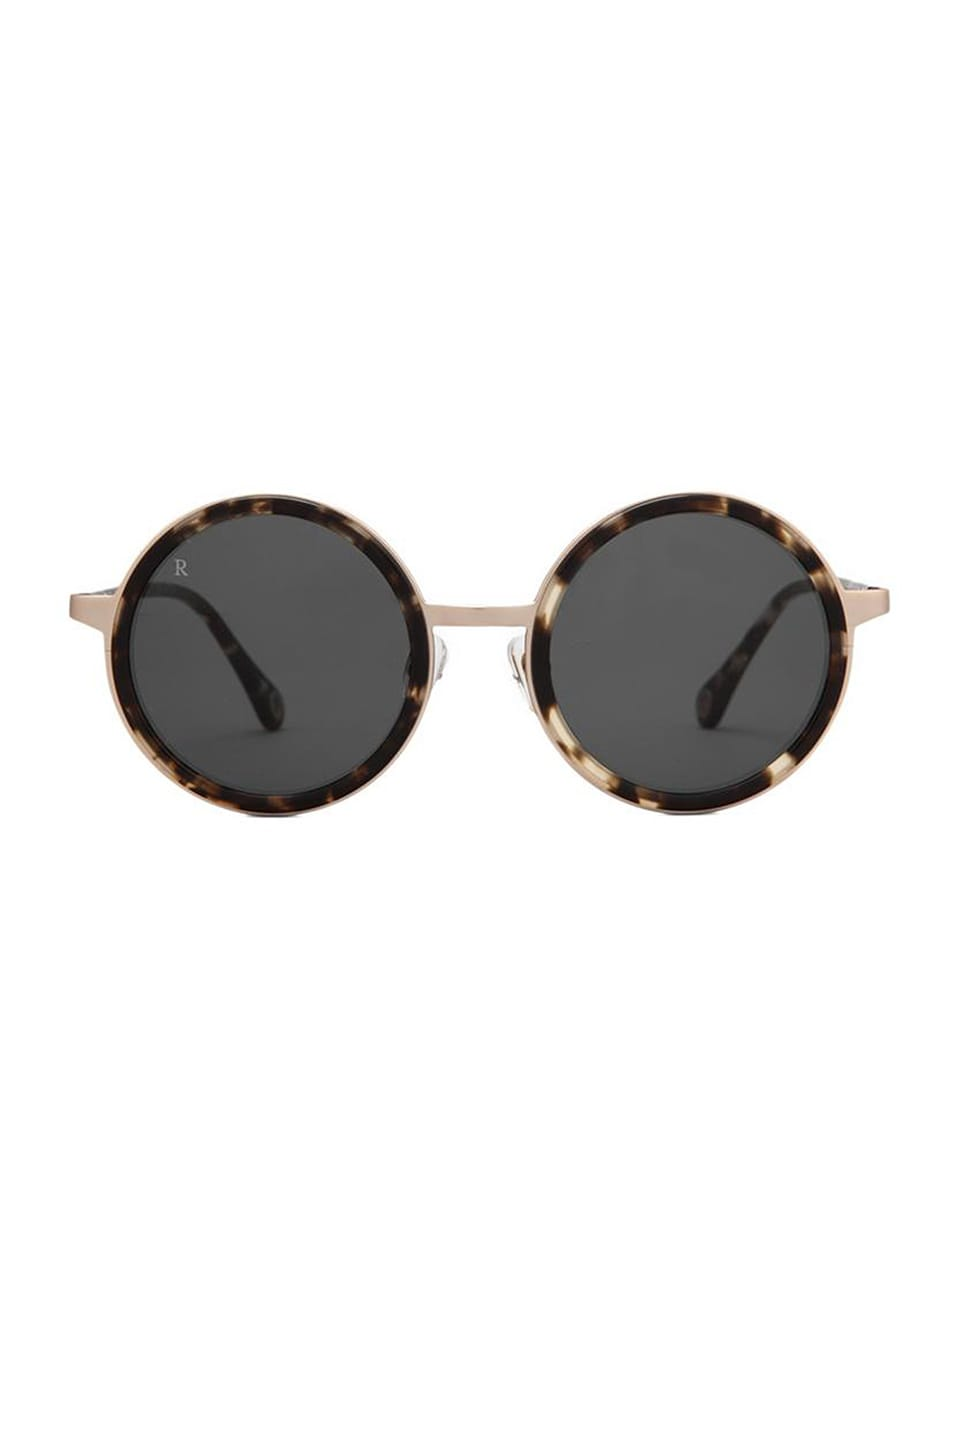 RAEN Fairbank Sunglasses en Brindle Tortoise